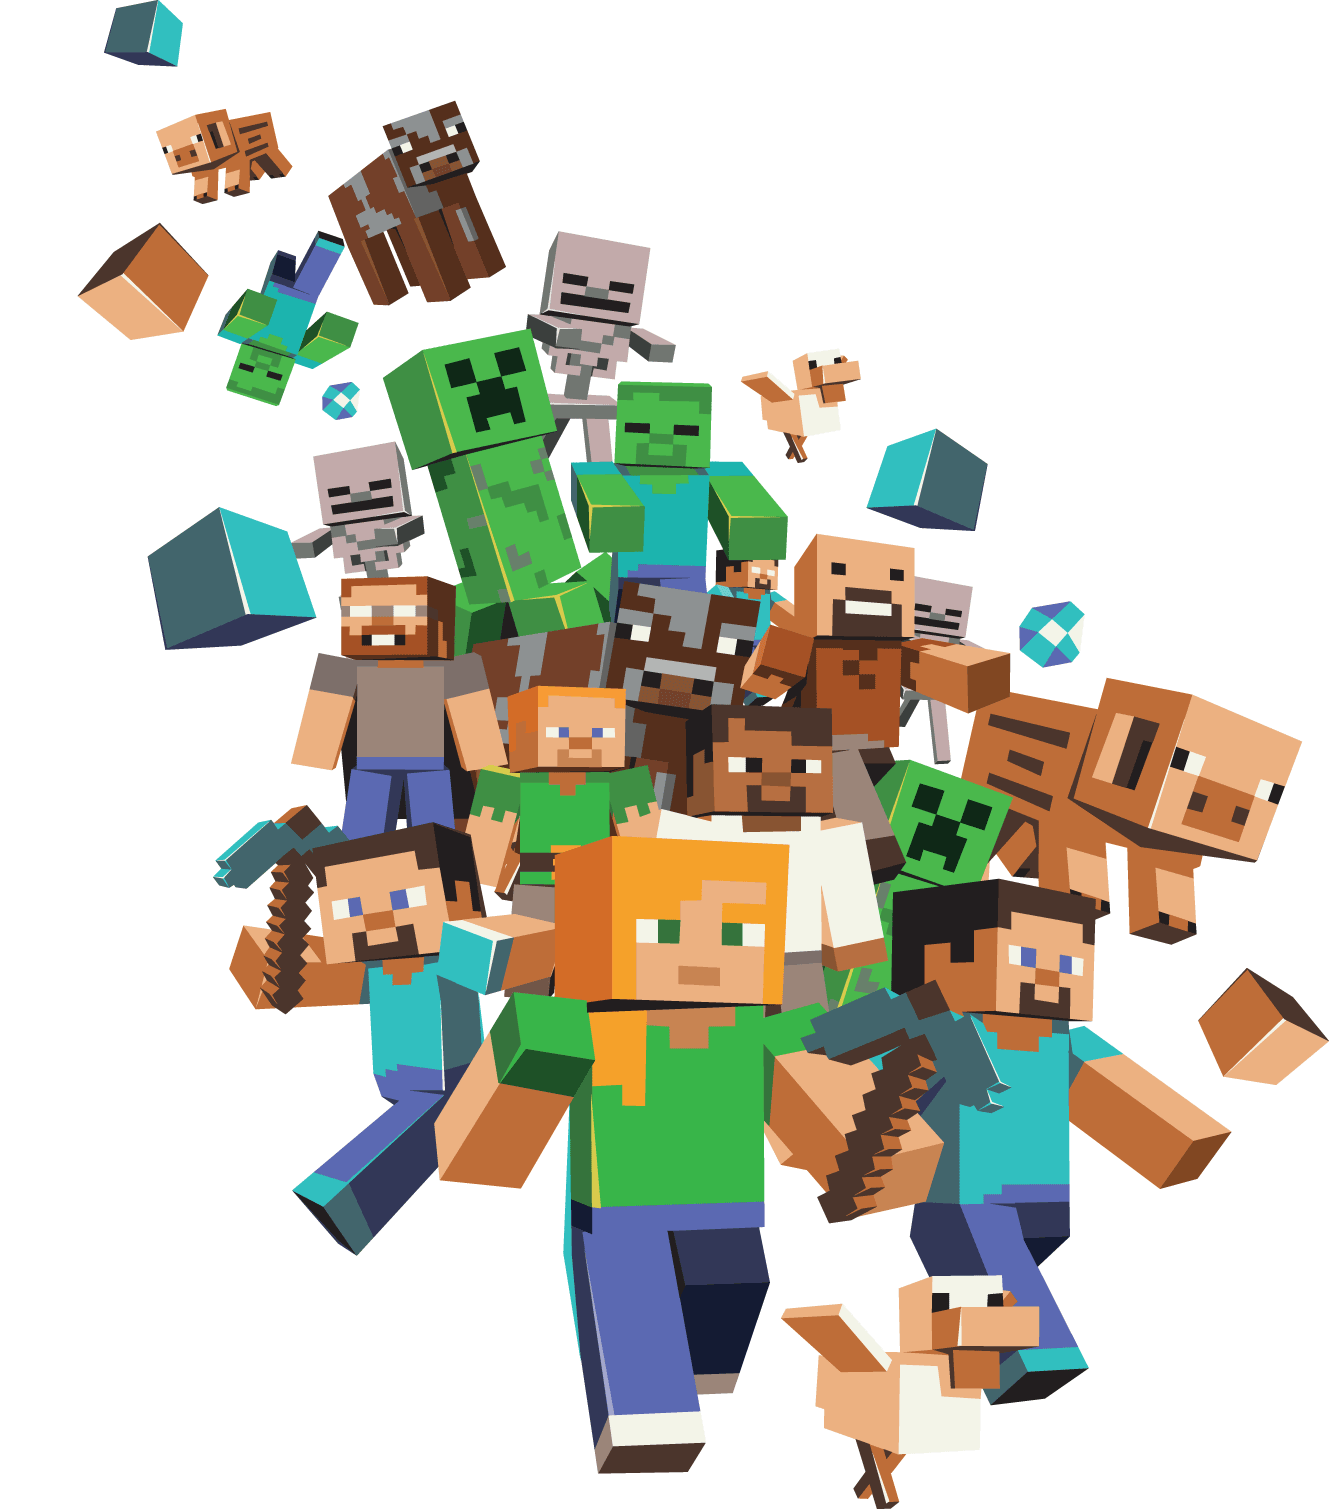 Minecraft clipart transparent background. Large group png stickpng